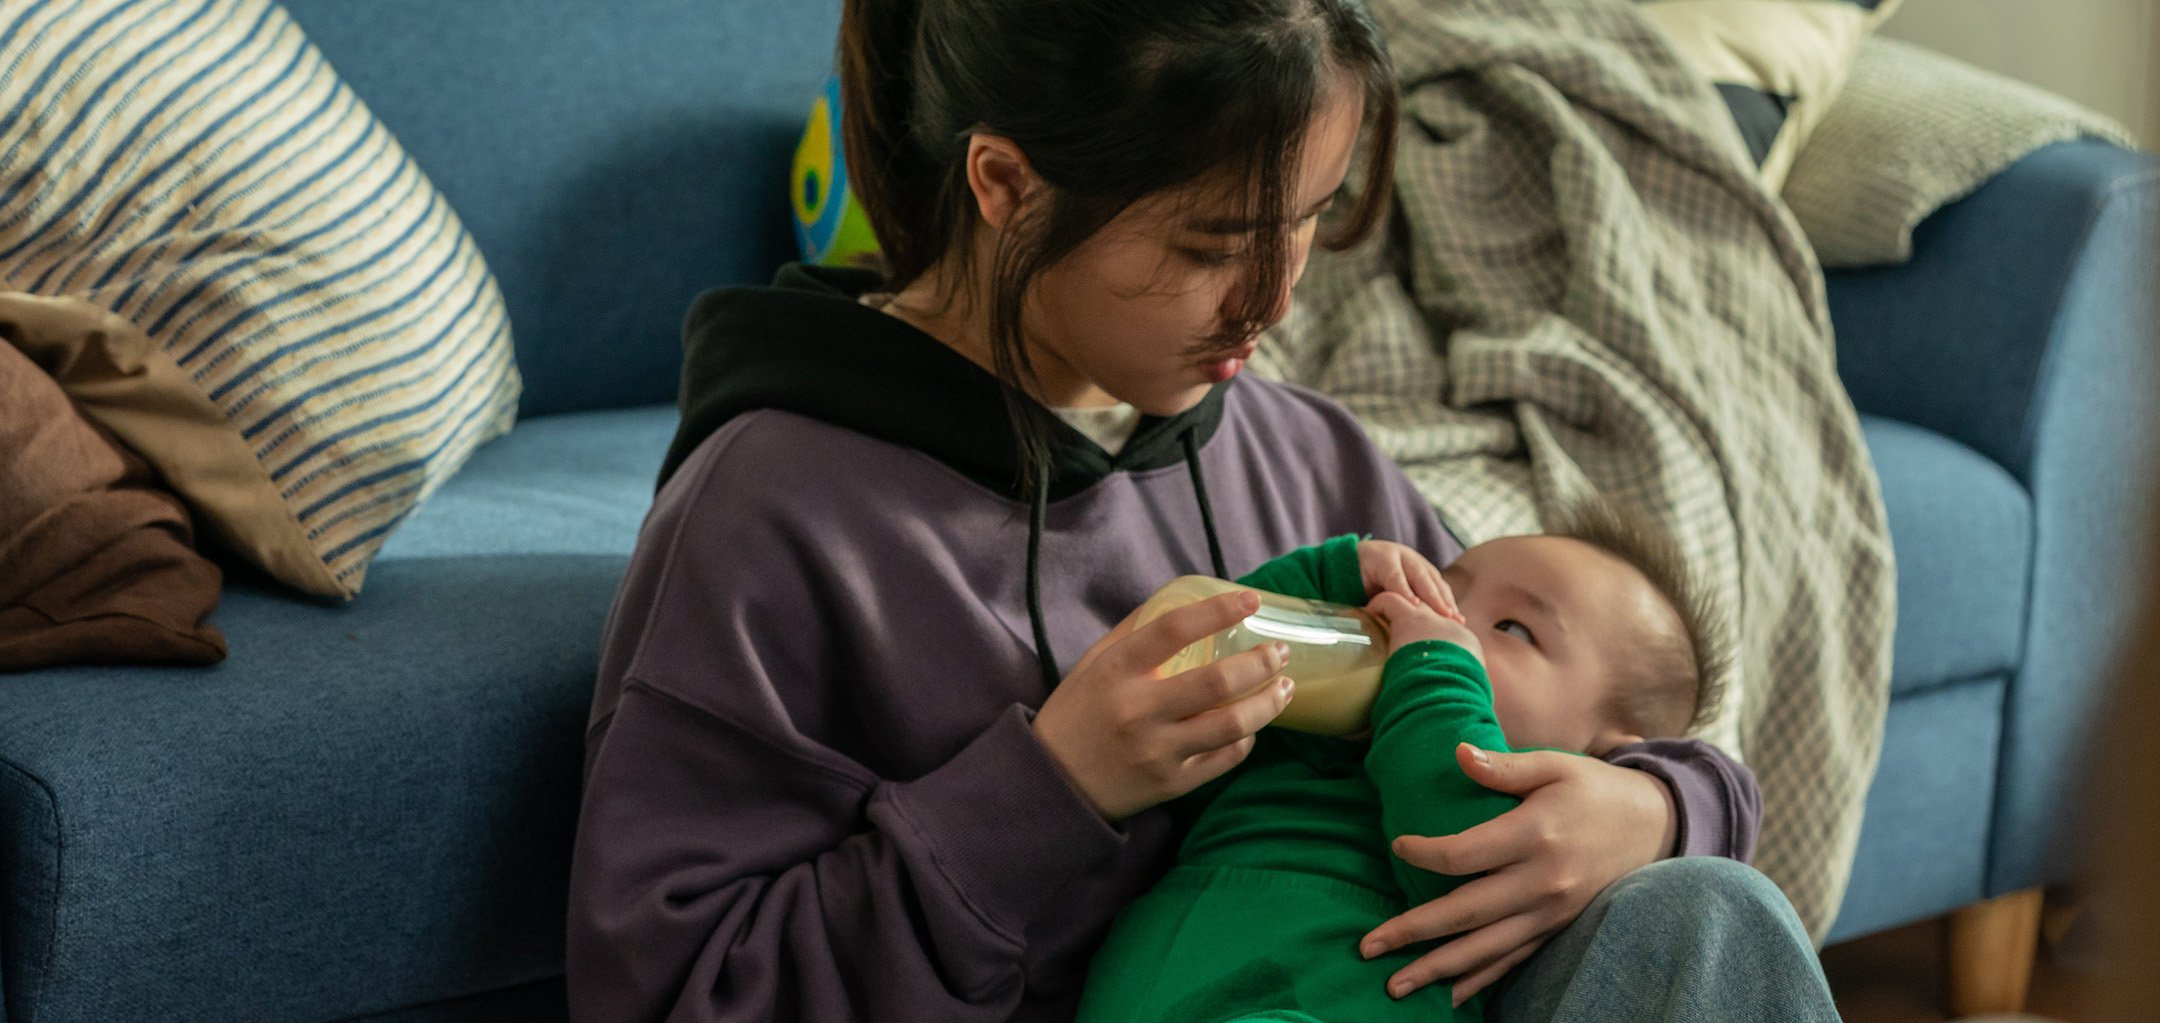 Young woman bottle feeding a baby in a stil from 'I' (2021)